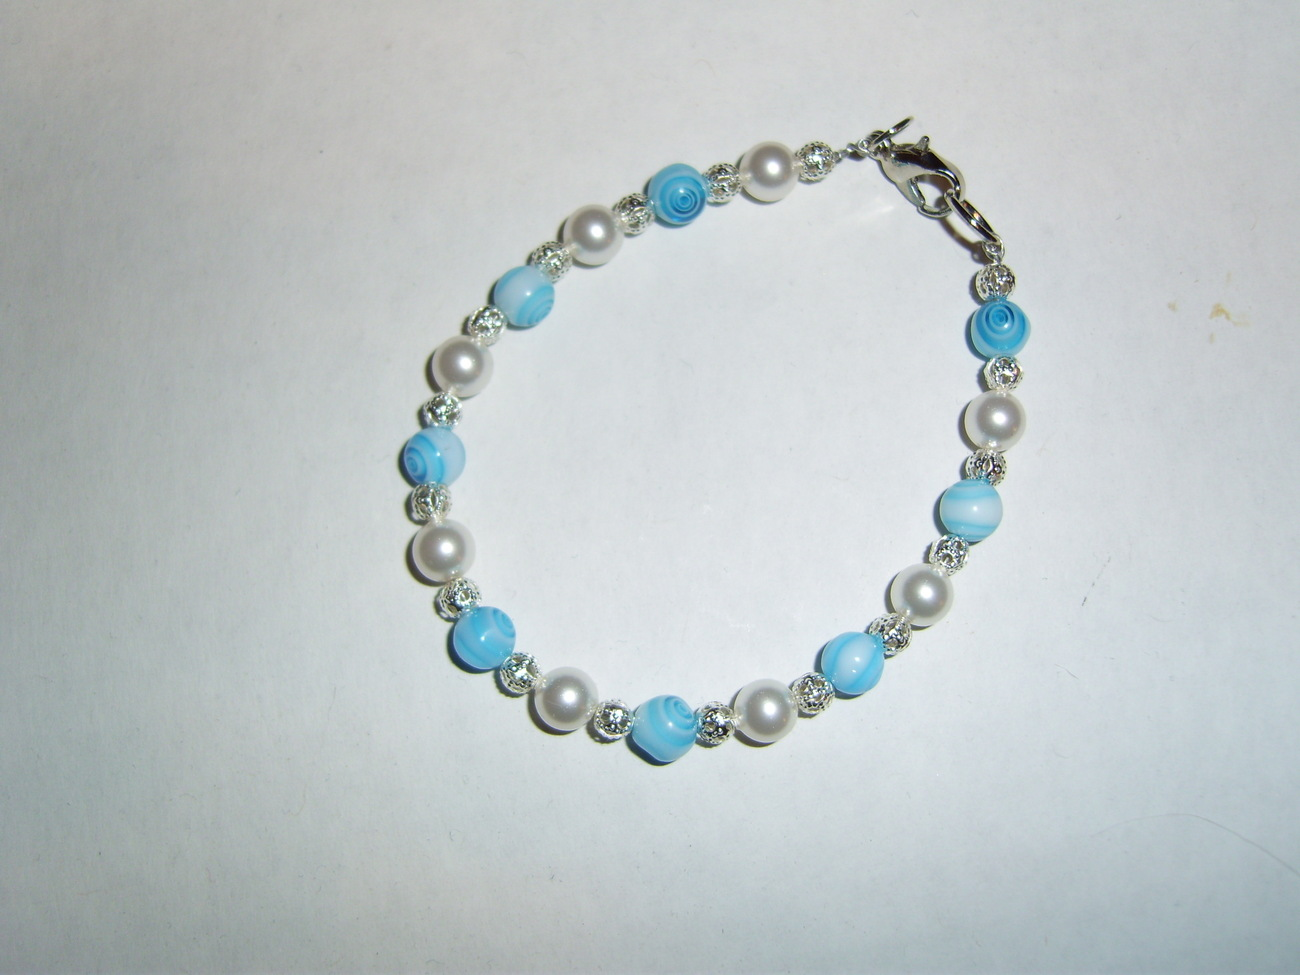 Handmade blue and white millefiori beaded silver bracelet